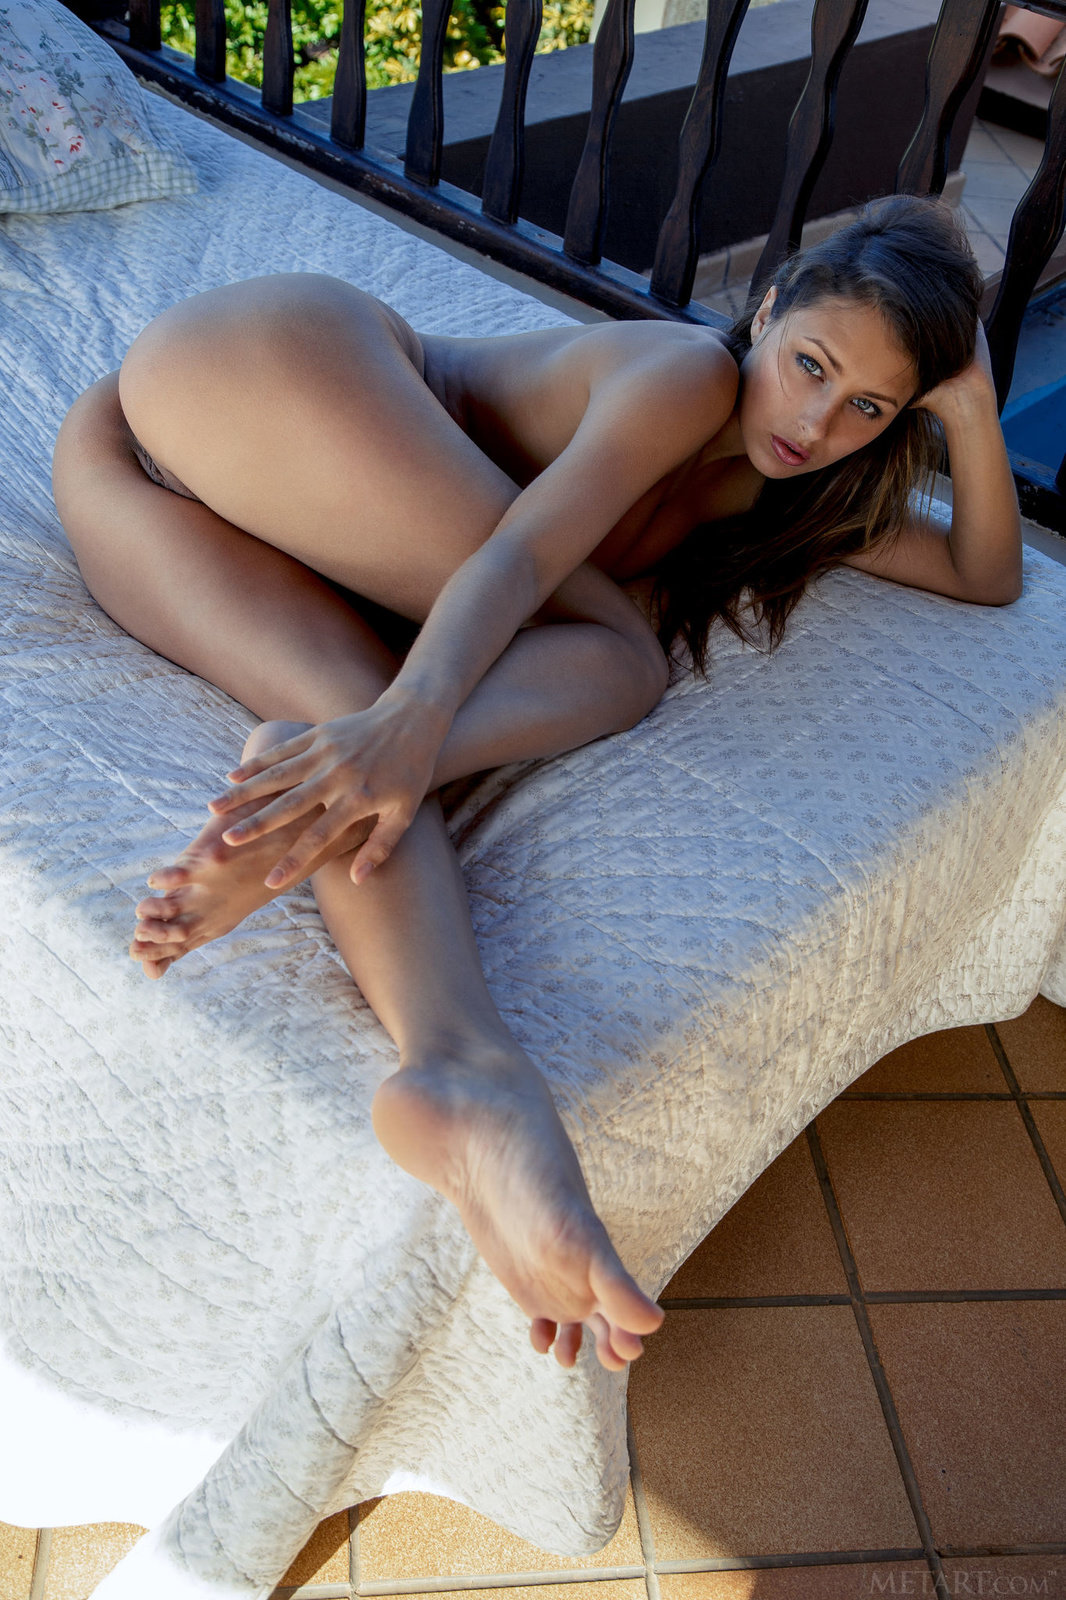 Alyssia kent hot brunette beauty in pov action - 3 part 5